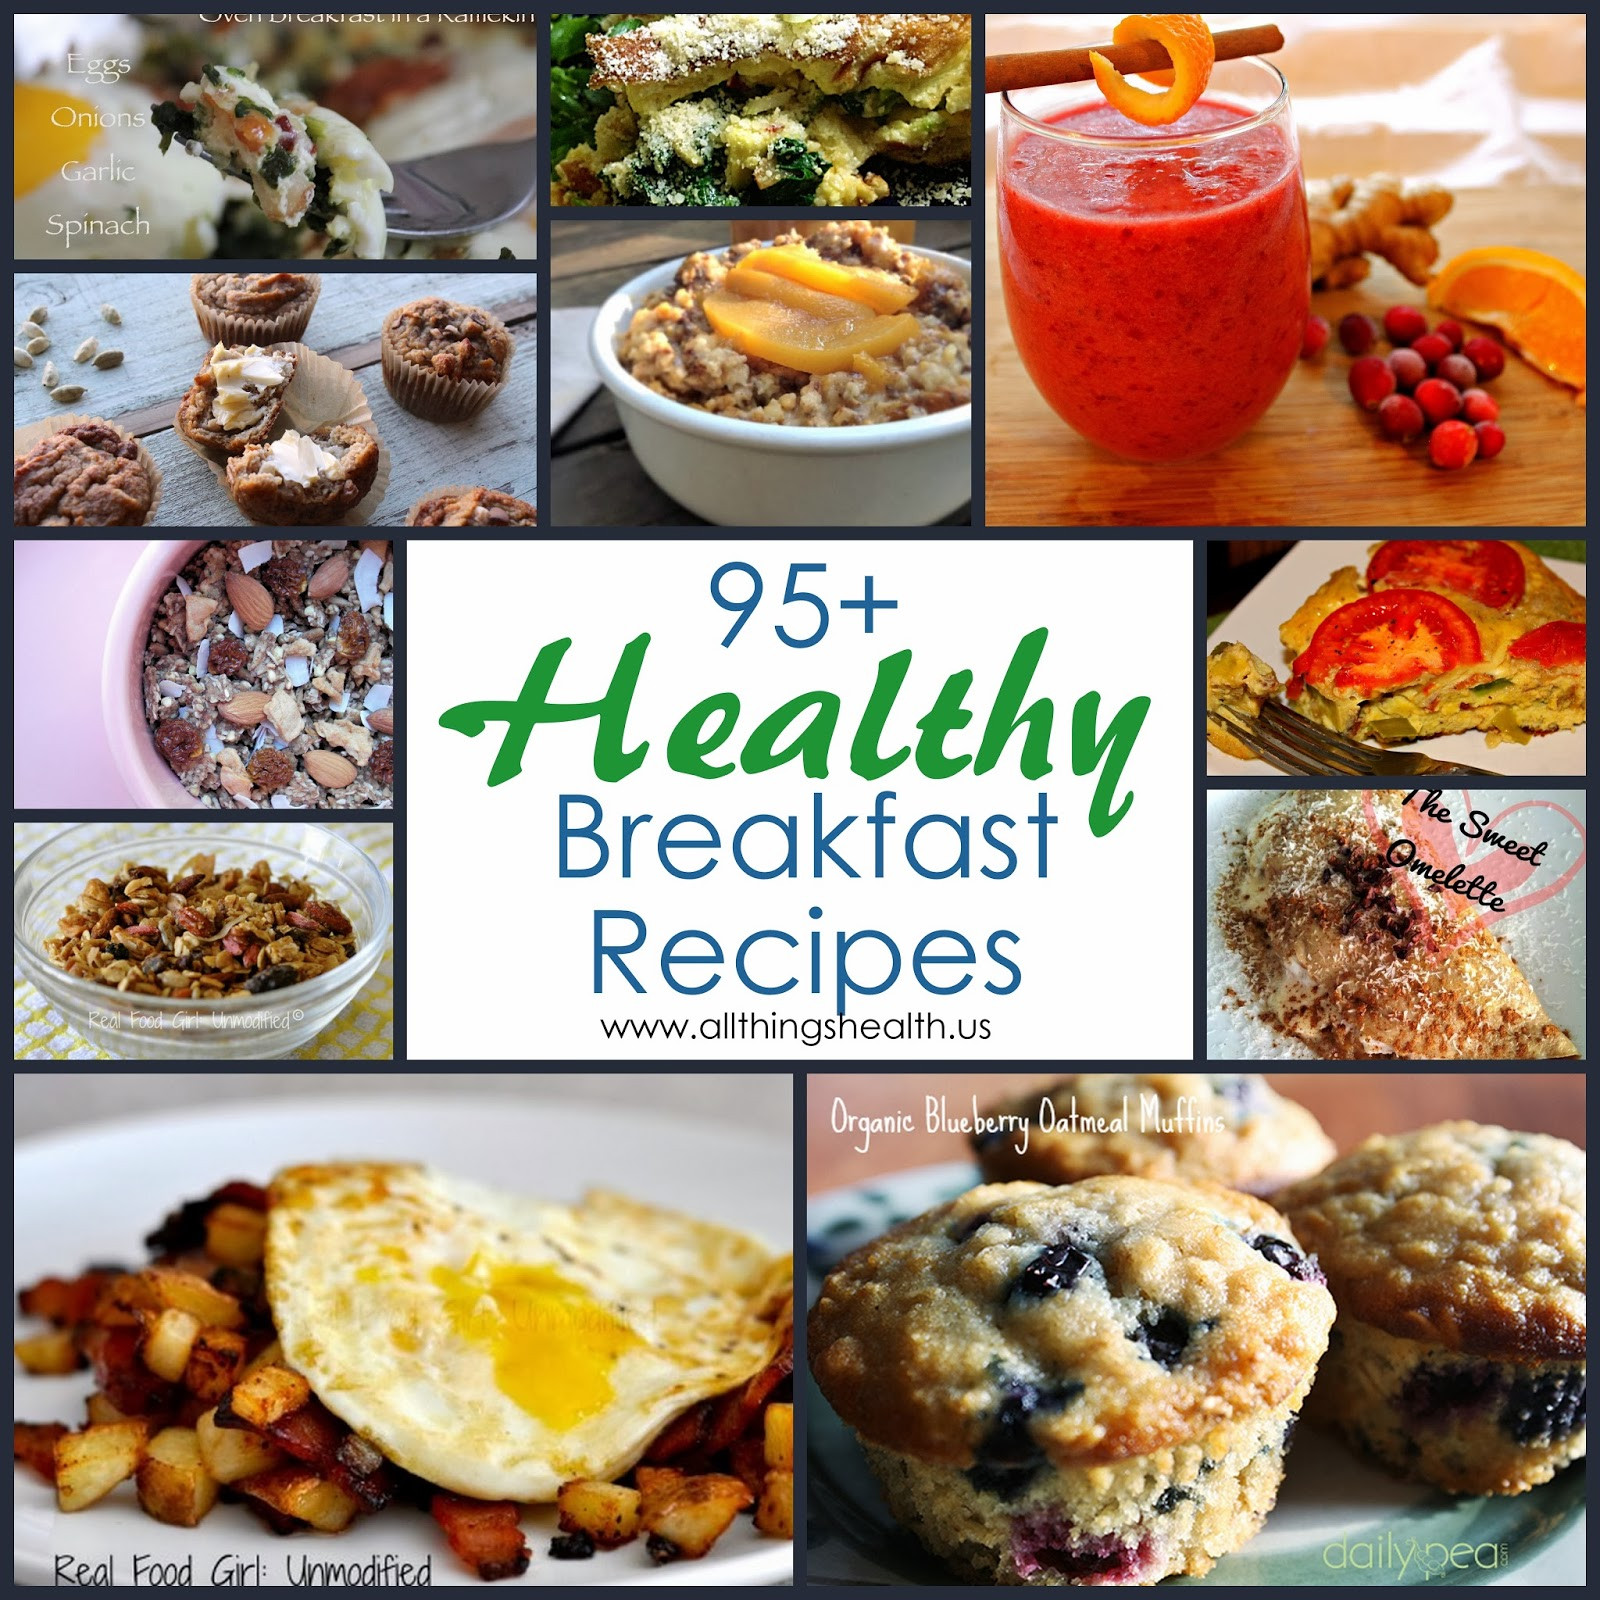 Healthy Breakfast Recipe  All Things Health 95 Healthy Breakfast Recipes